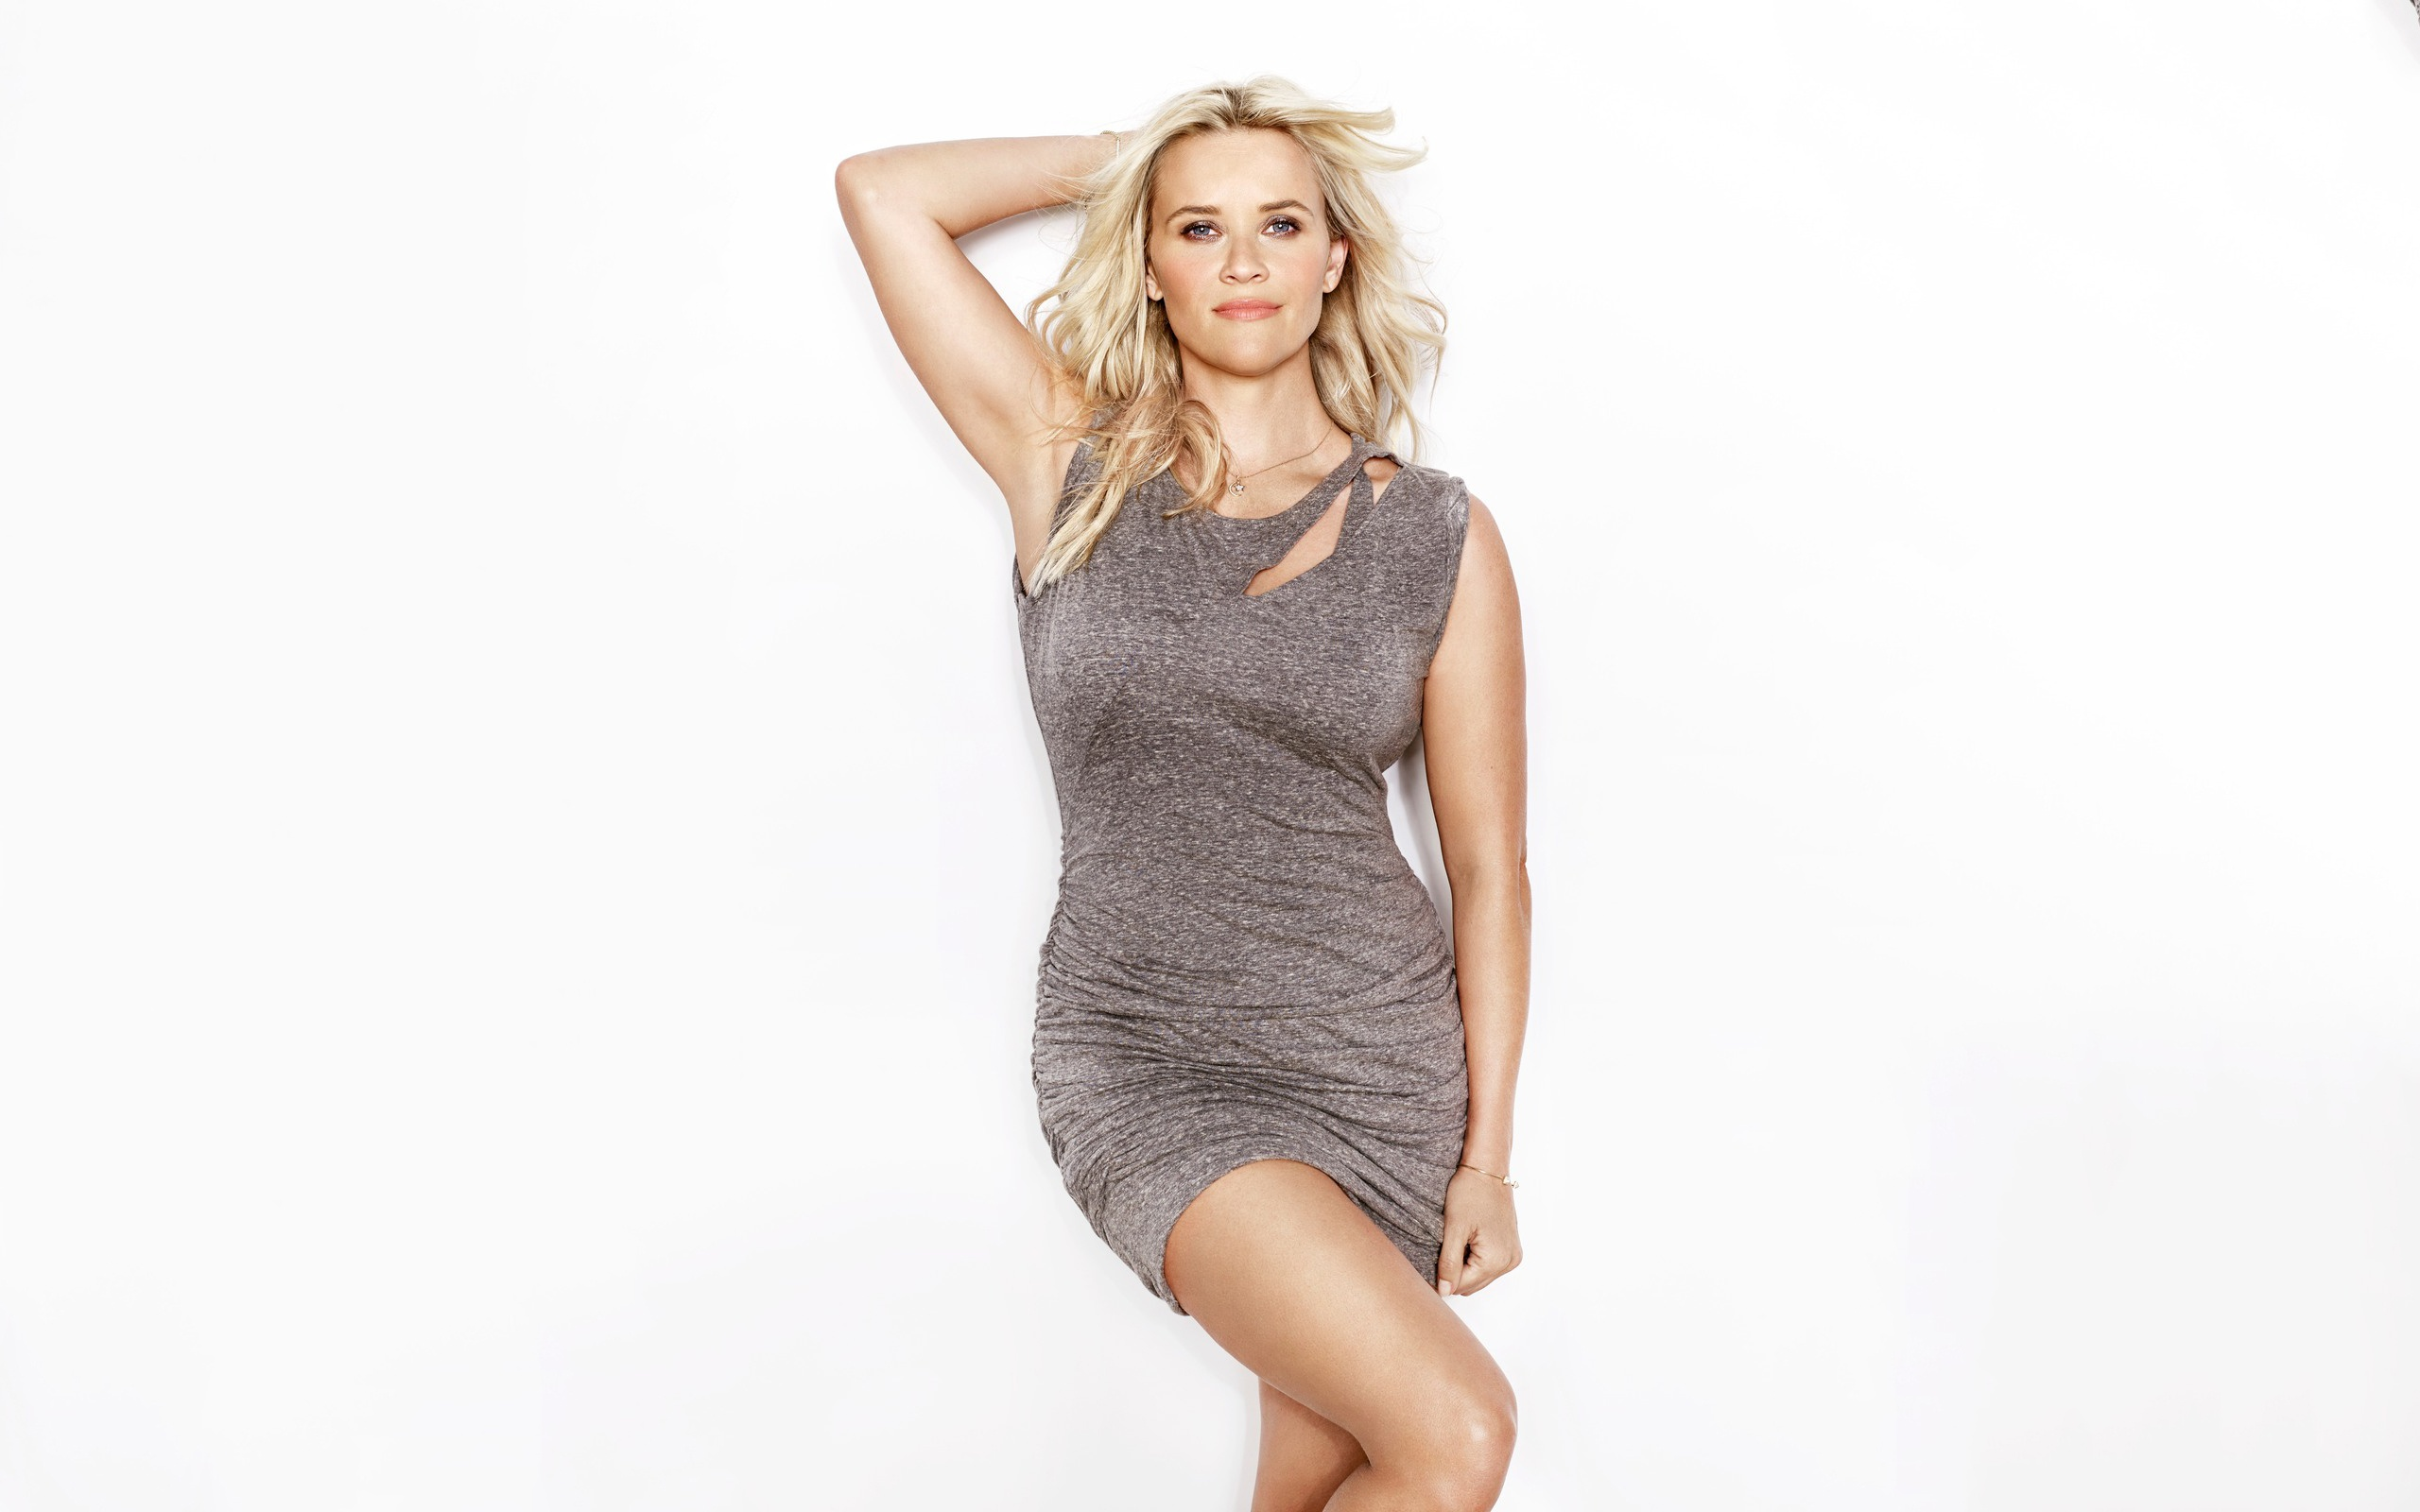 2560x1600 - Reese Witherspoon Wallpapers 18